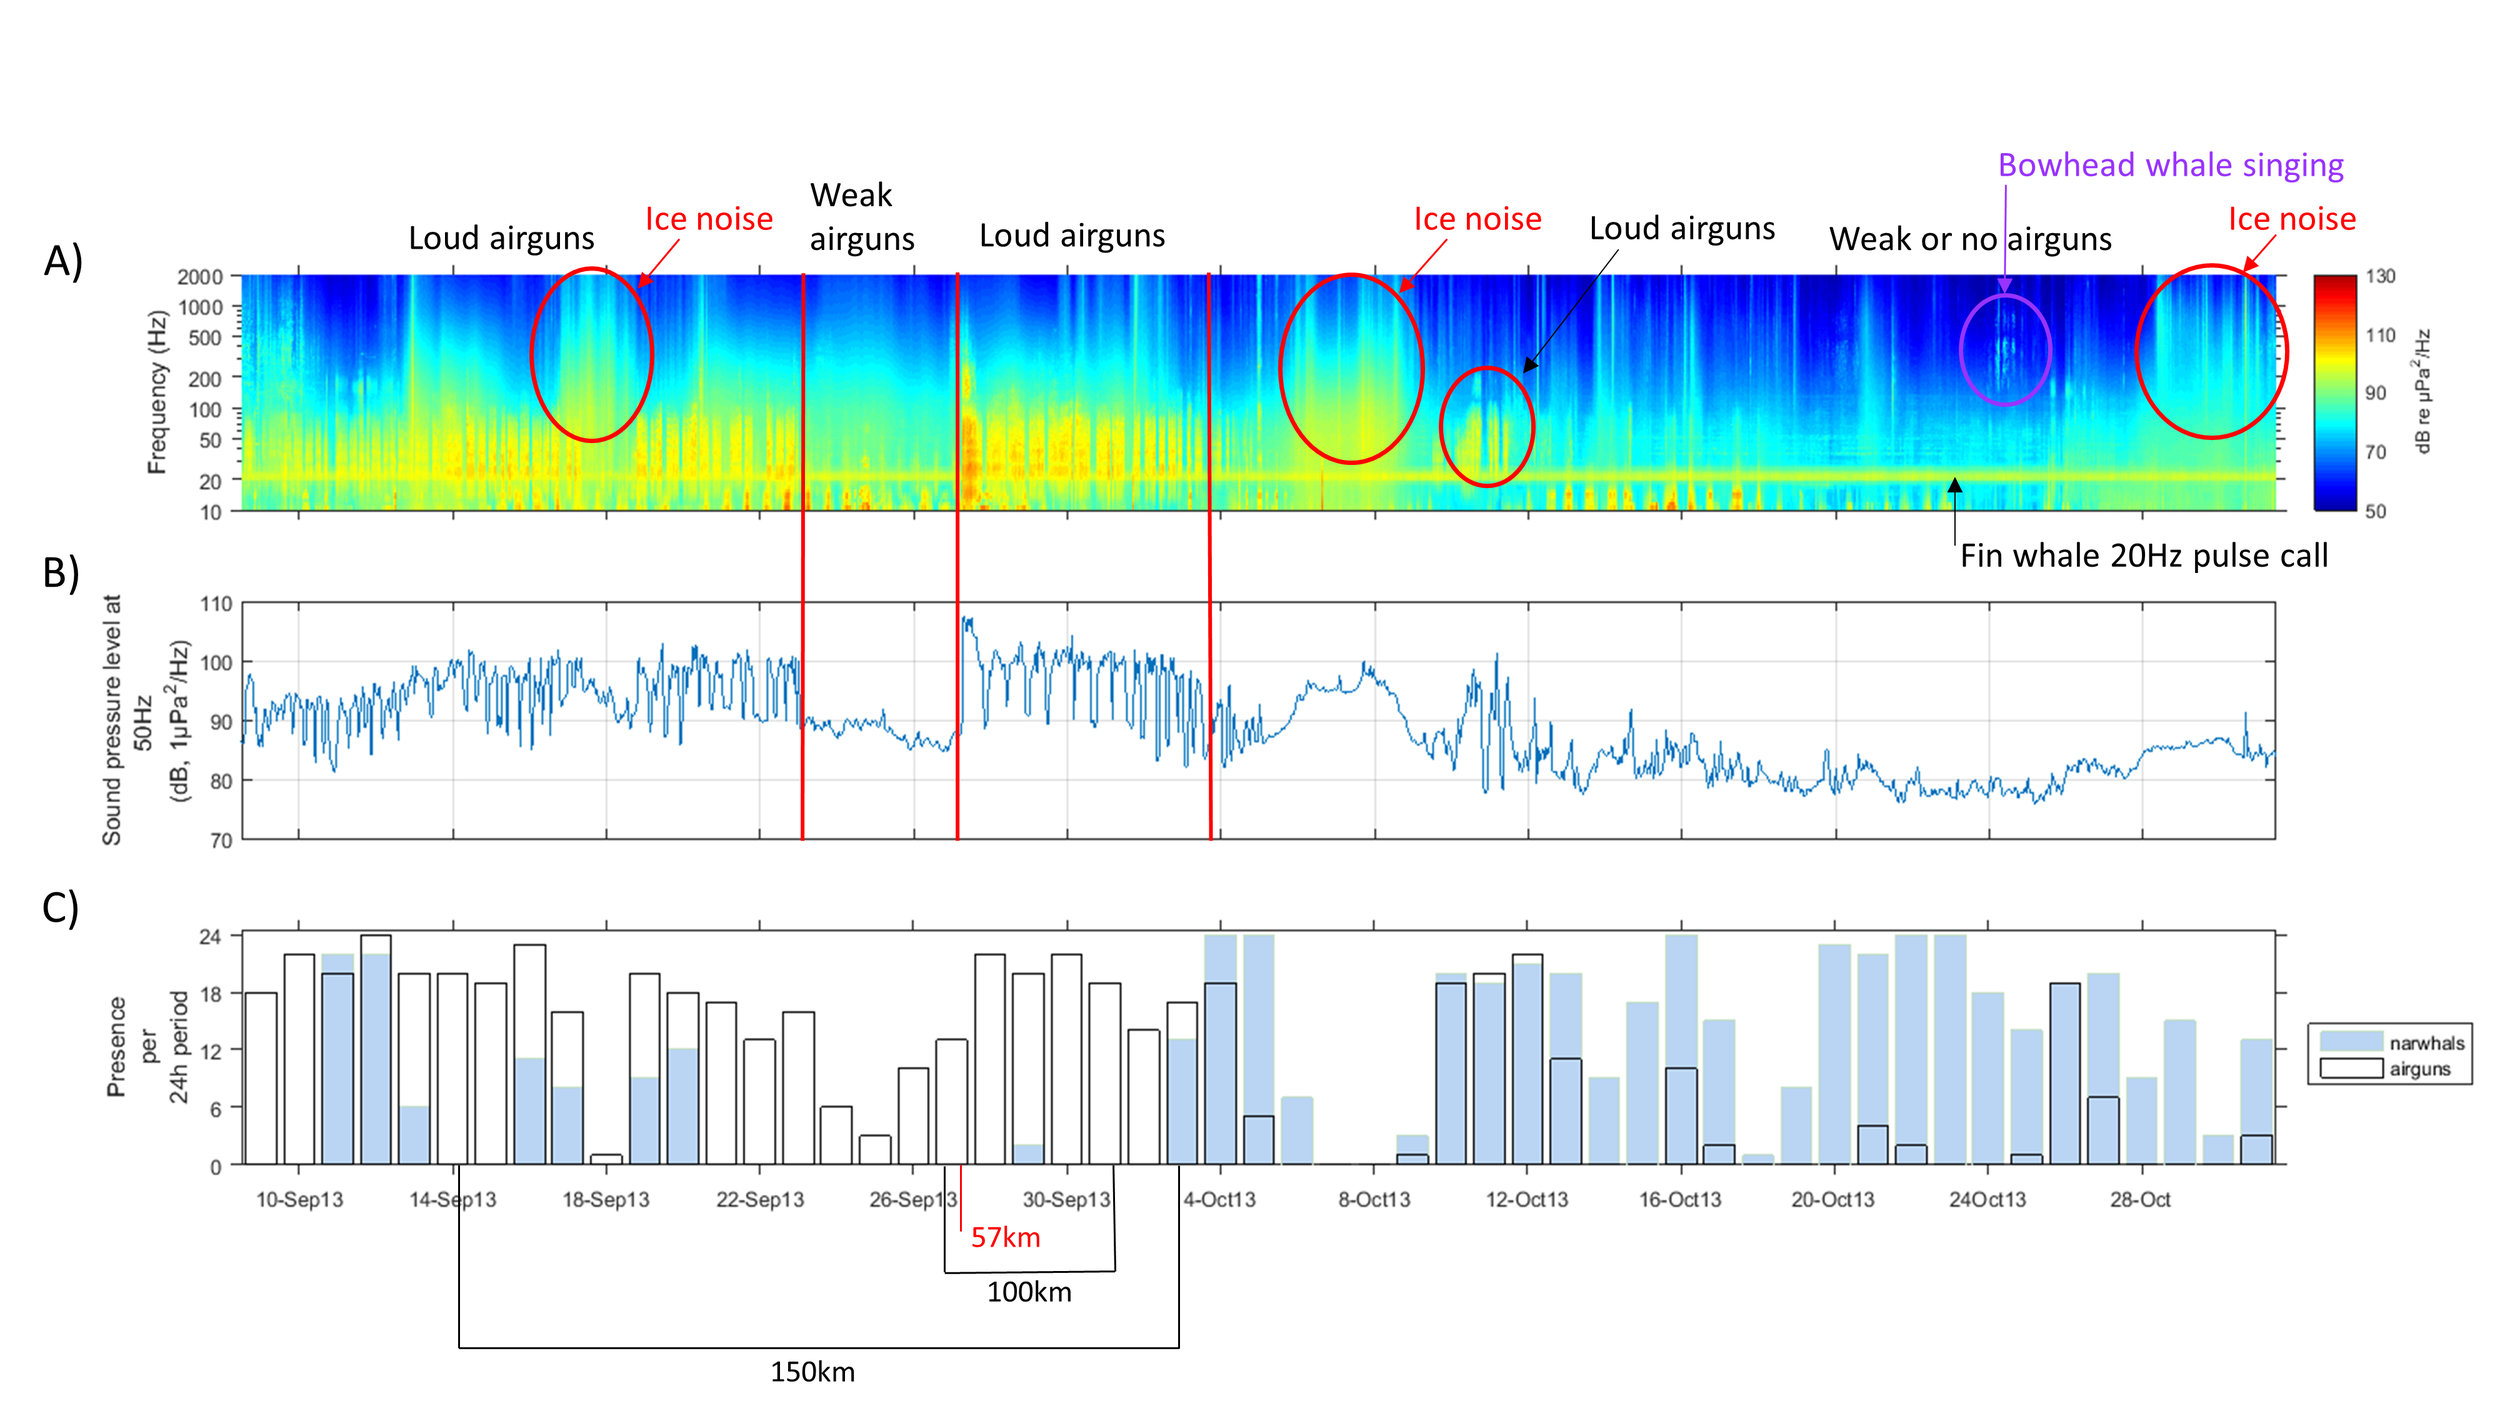 Examples of the data recorded by the AURALS (in this case the Fram Strait AURAL from 10 September to 28 October 2013). Panel A shows loud airgun signals as well as ice noise and bowhead whale and fin whale vocalisations. Panel B shows noises generated by airguns and panel C illustrates the simultaneous presence of airguns and narwhals. At the bottom of panel C, the distances between survey vessels and the recorder are given. Ahonen et al. unpublished data